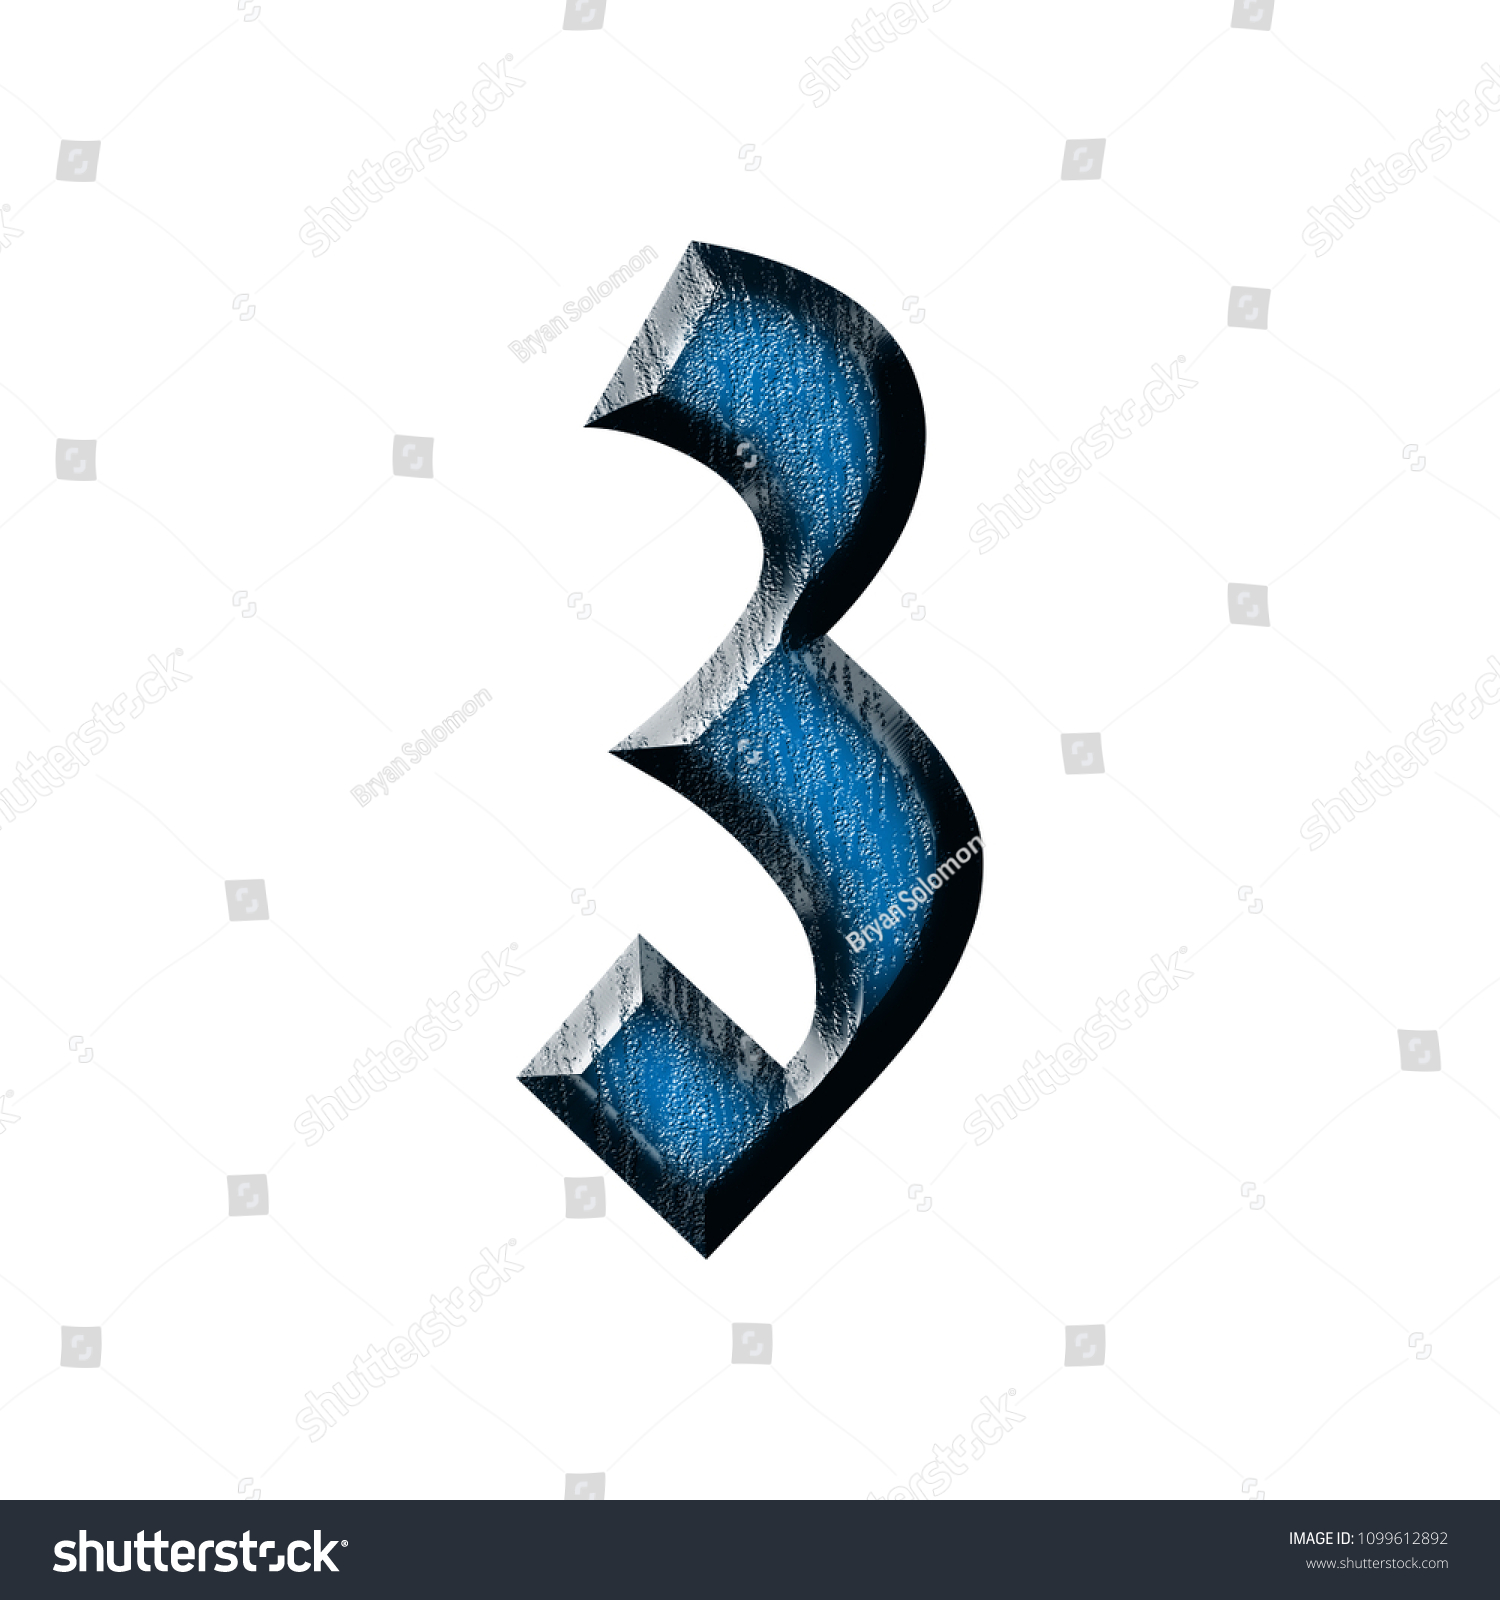 Blue Wood Number Three 3 In A 3D Illustration With Glossy Grain Texture Style